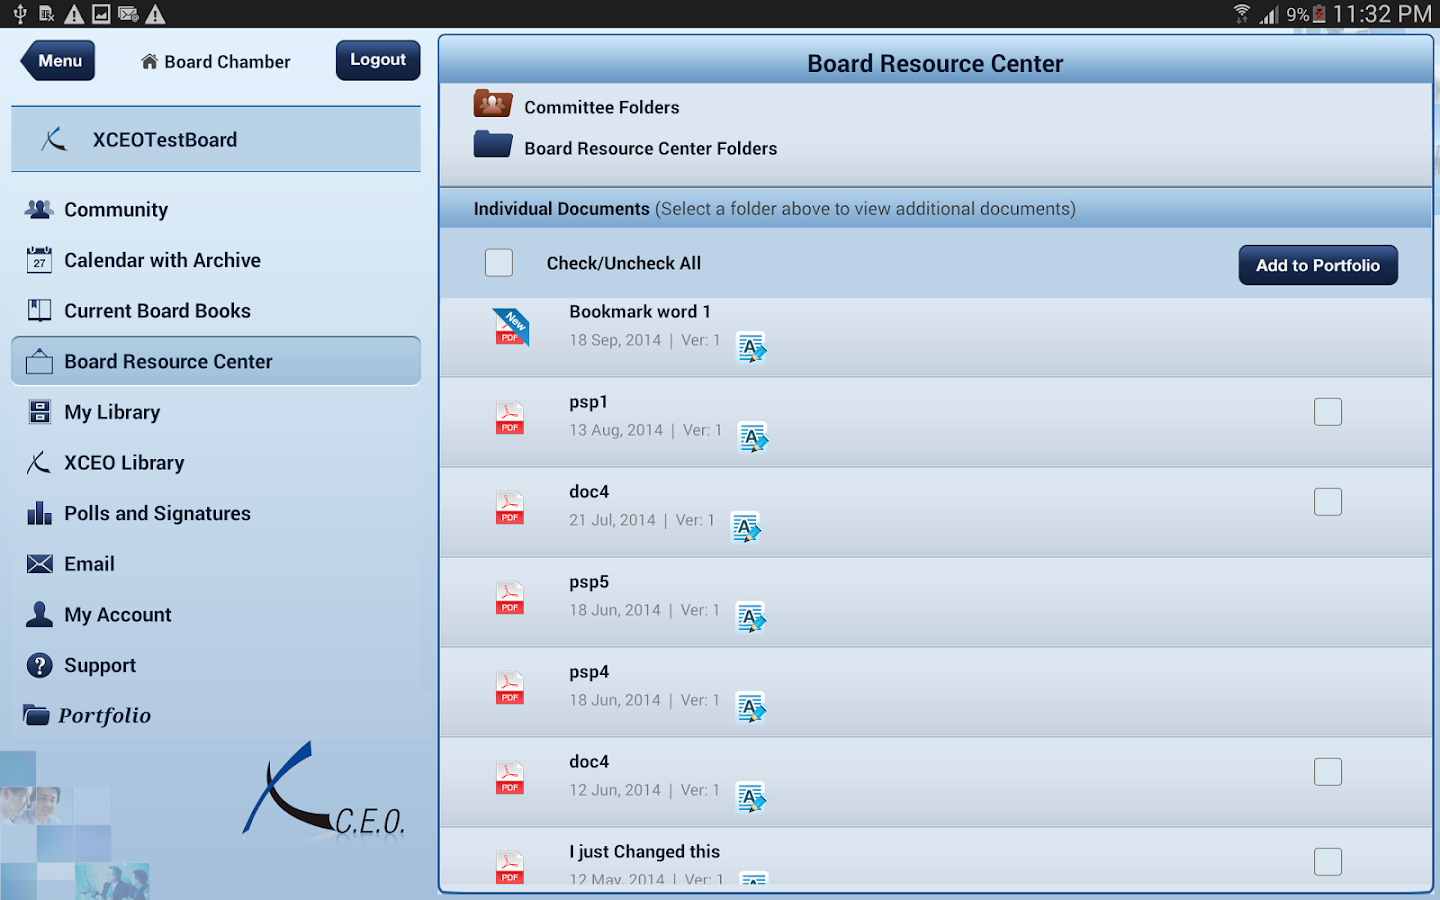 BoardPortal PLUS®- screenshot